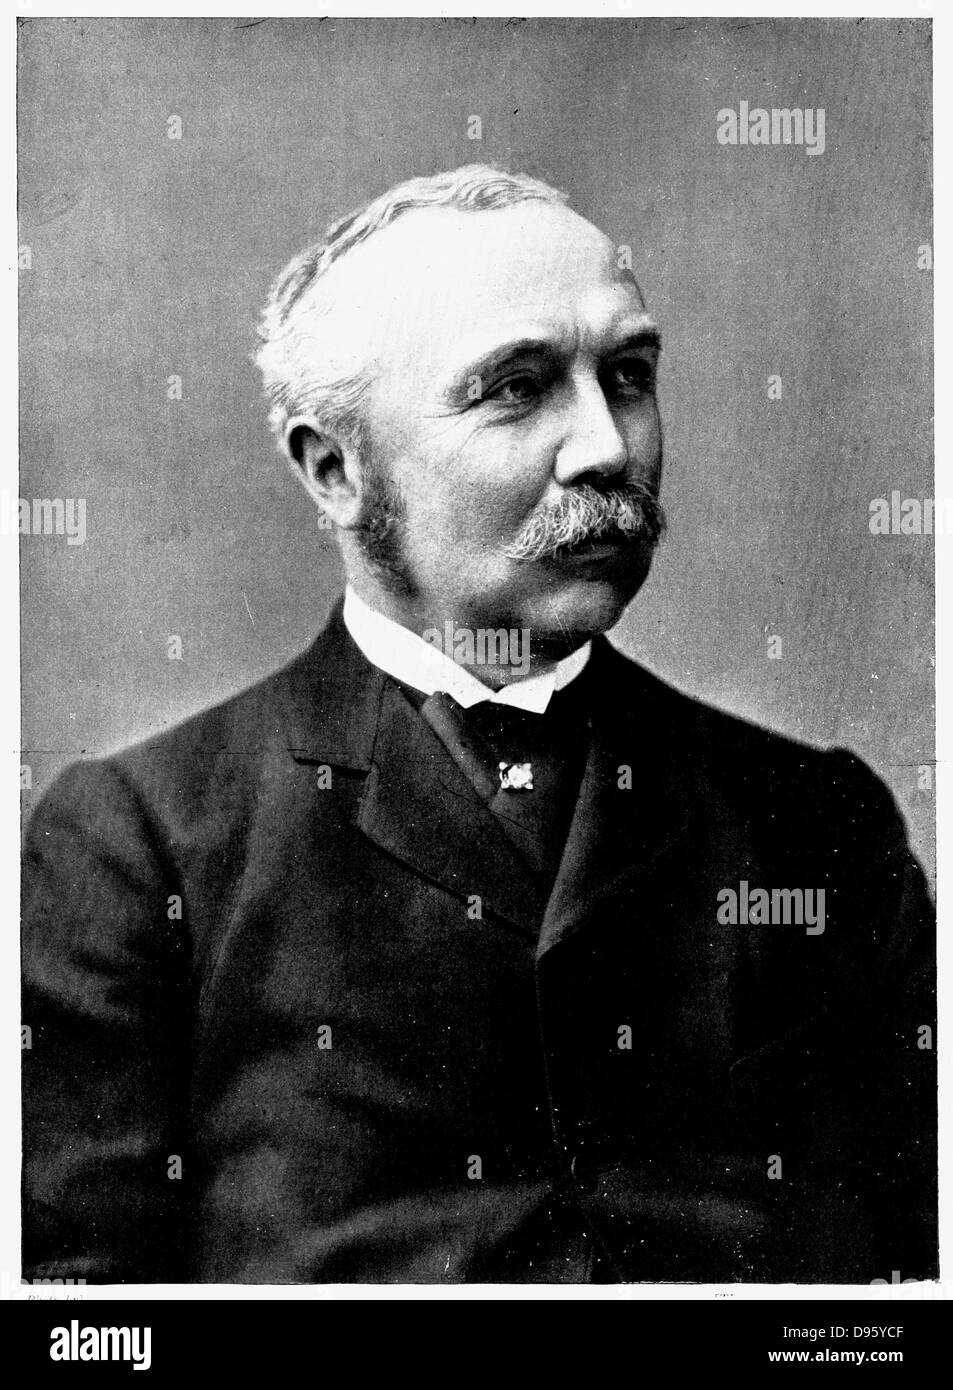 Henry Campbell-Bannerman (1836-1908) Scottish-born British statesman. Leader of the Liberal Party, 1899. Prime Minister - Stock Image